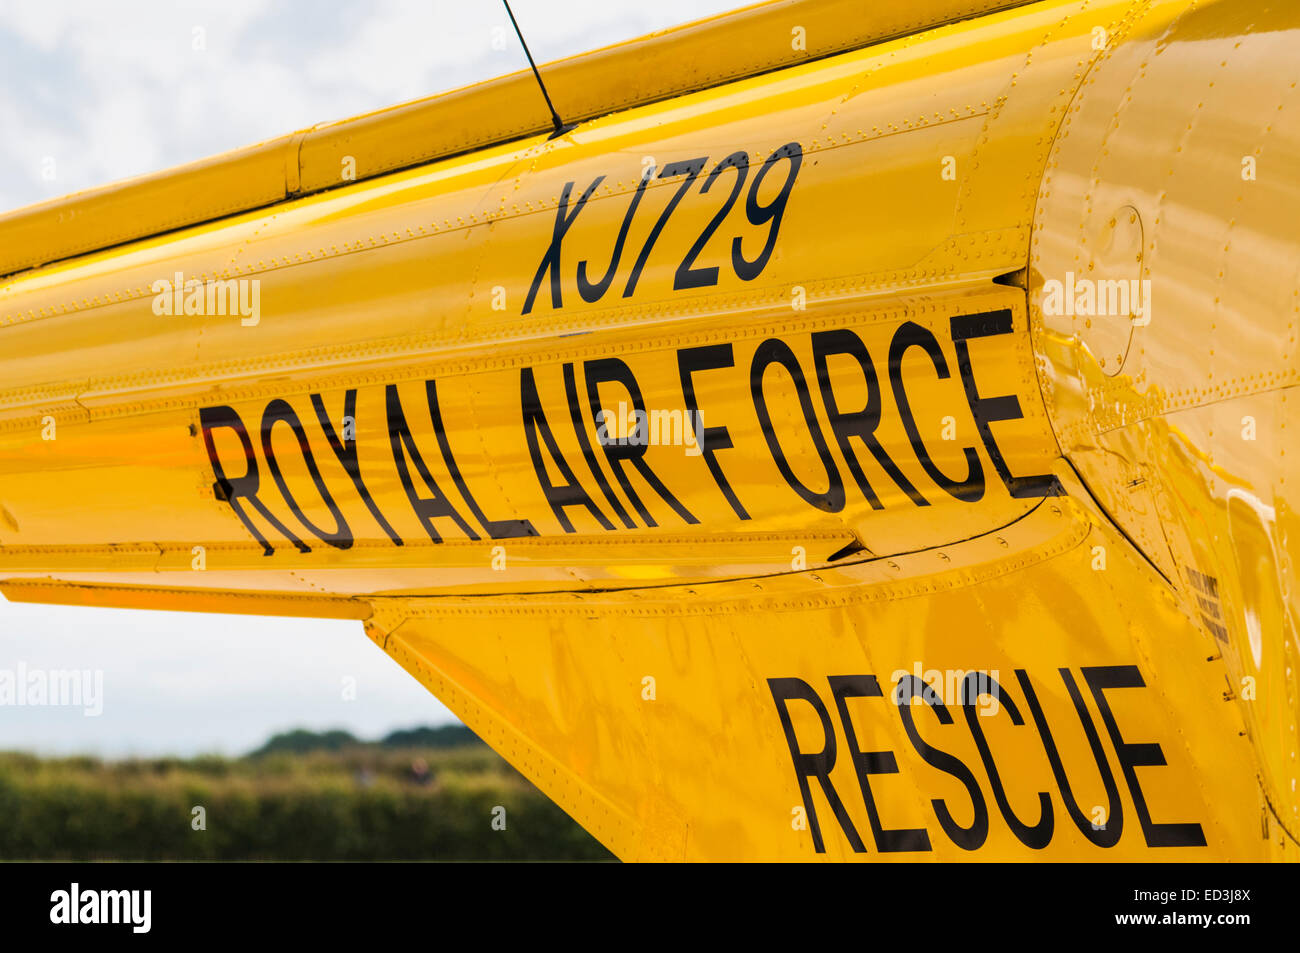 Wording on the side of an old Royal Air Force  Westland Whirlwind rescue helicopter - Stock Image